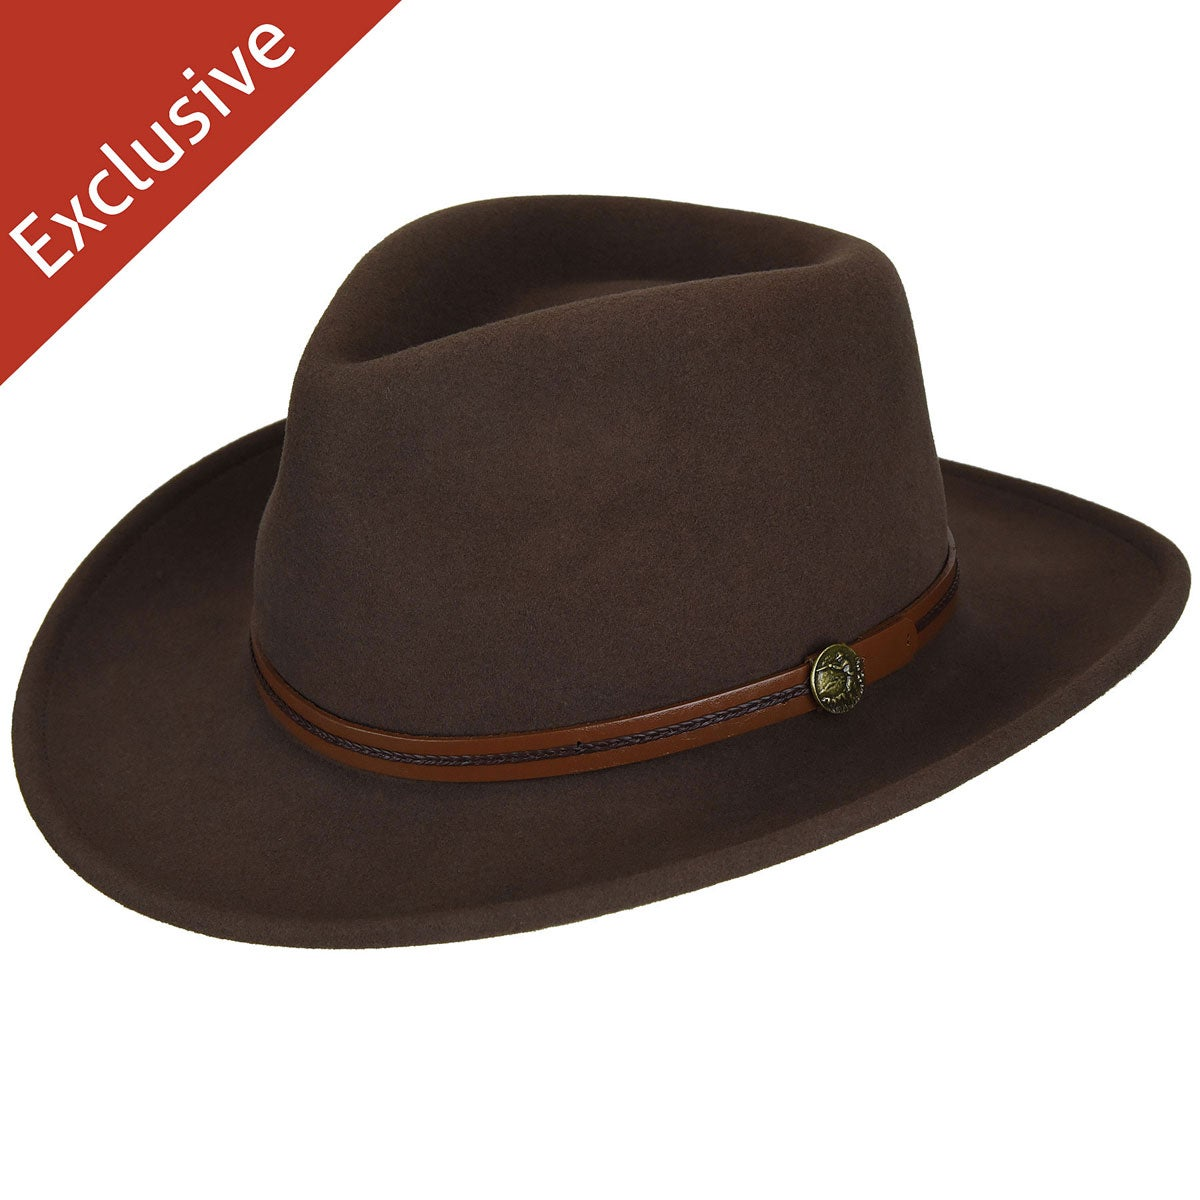 Hats.com Gadabout Outback Hat - Exclusive in Pecan